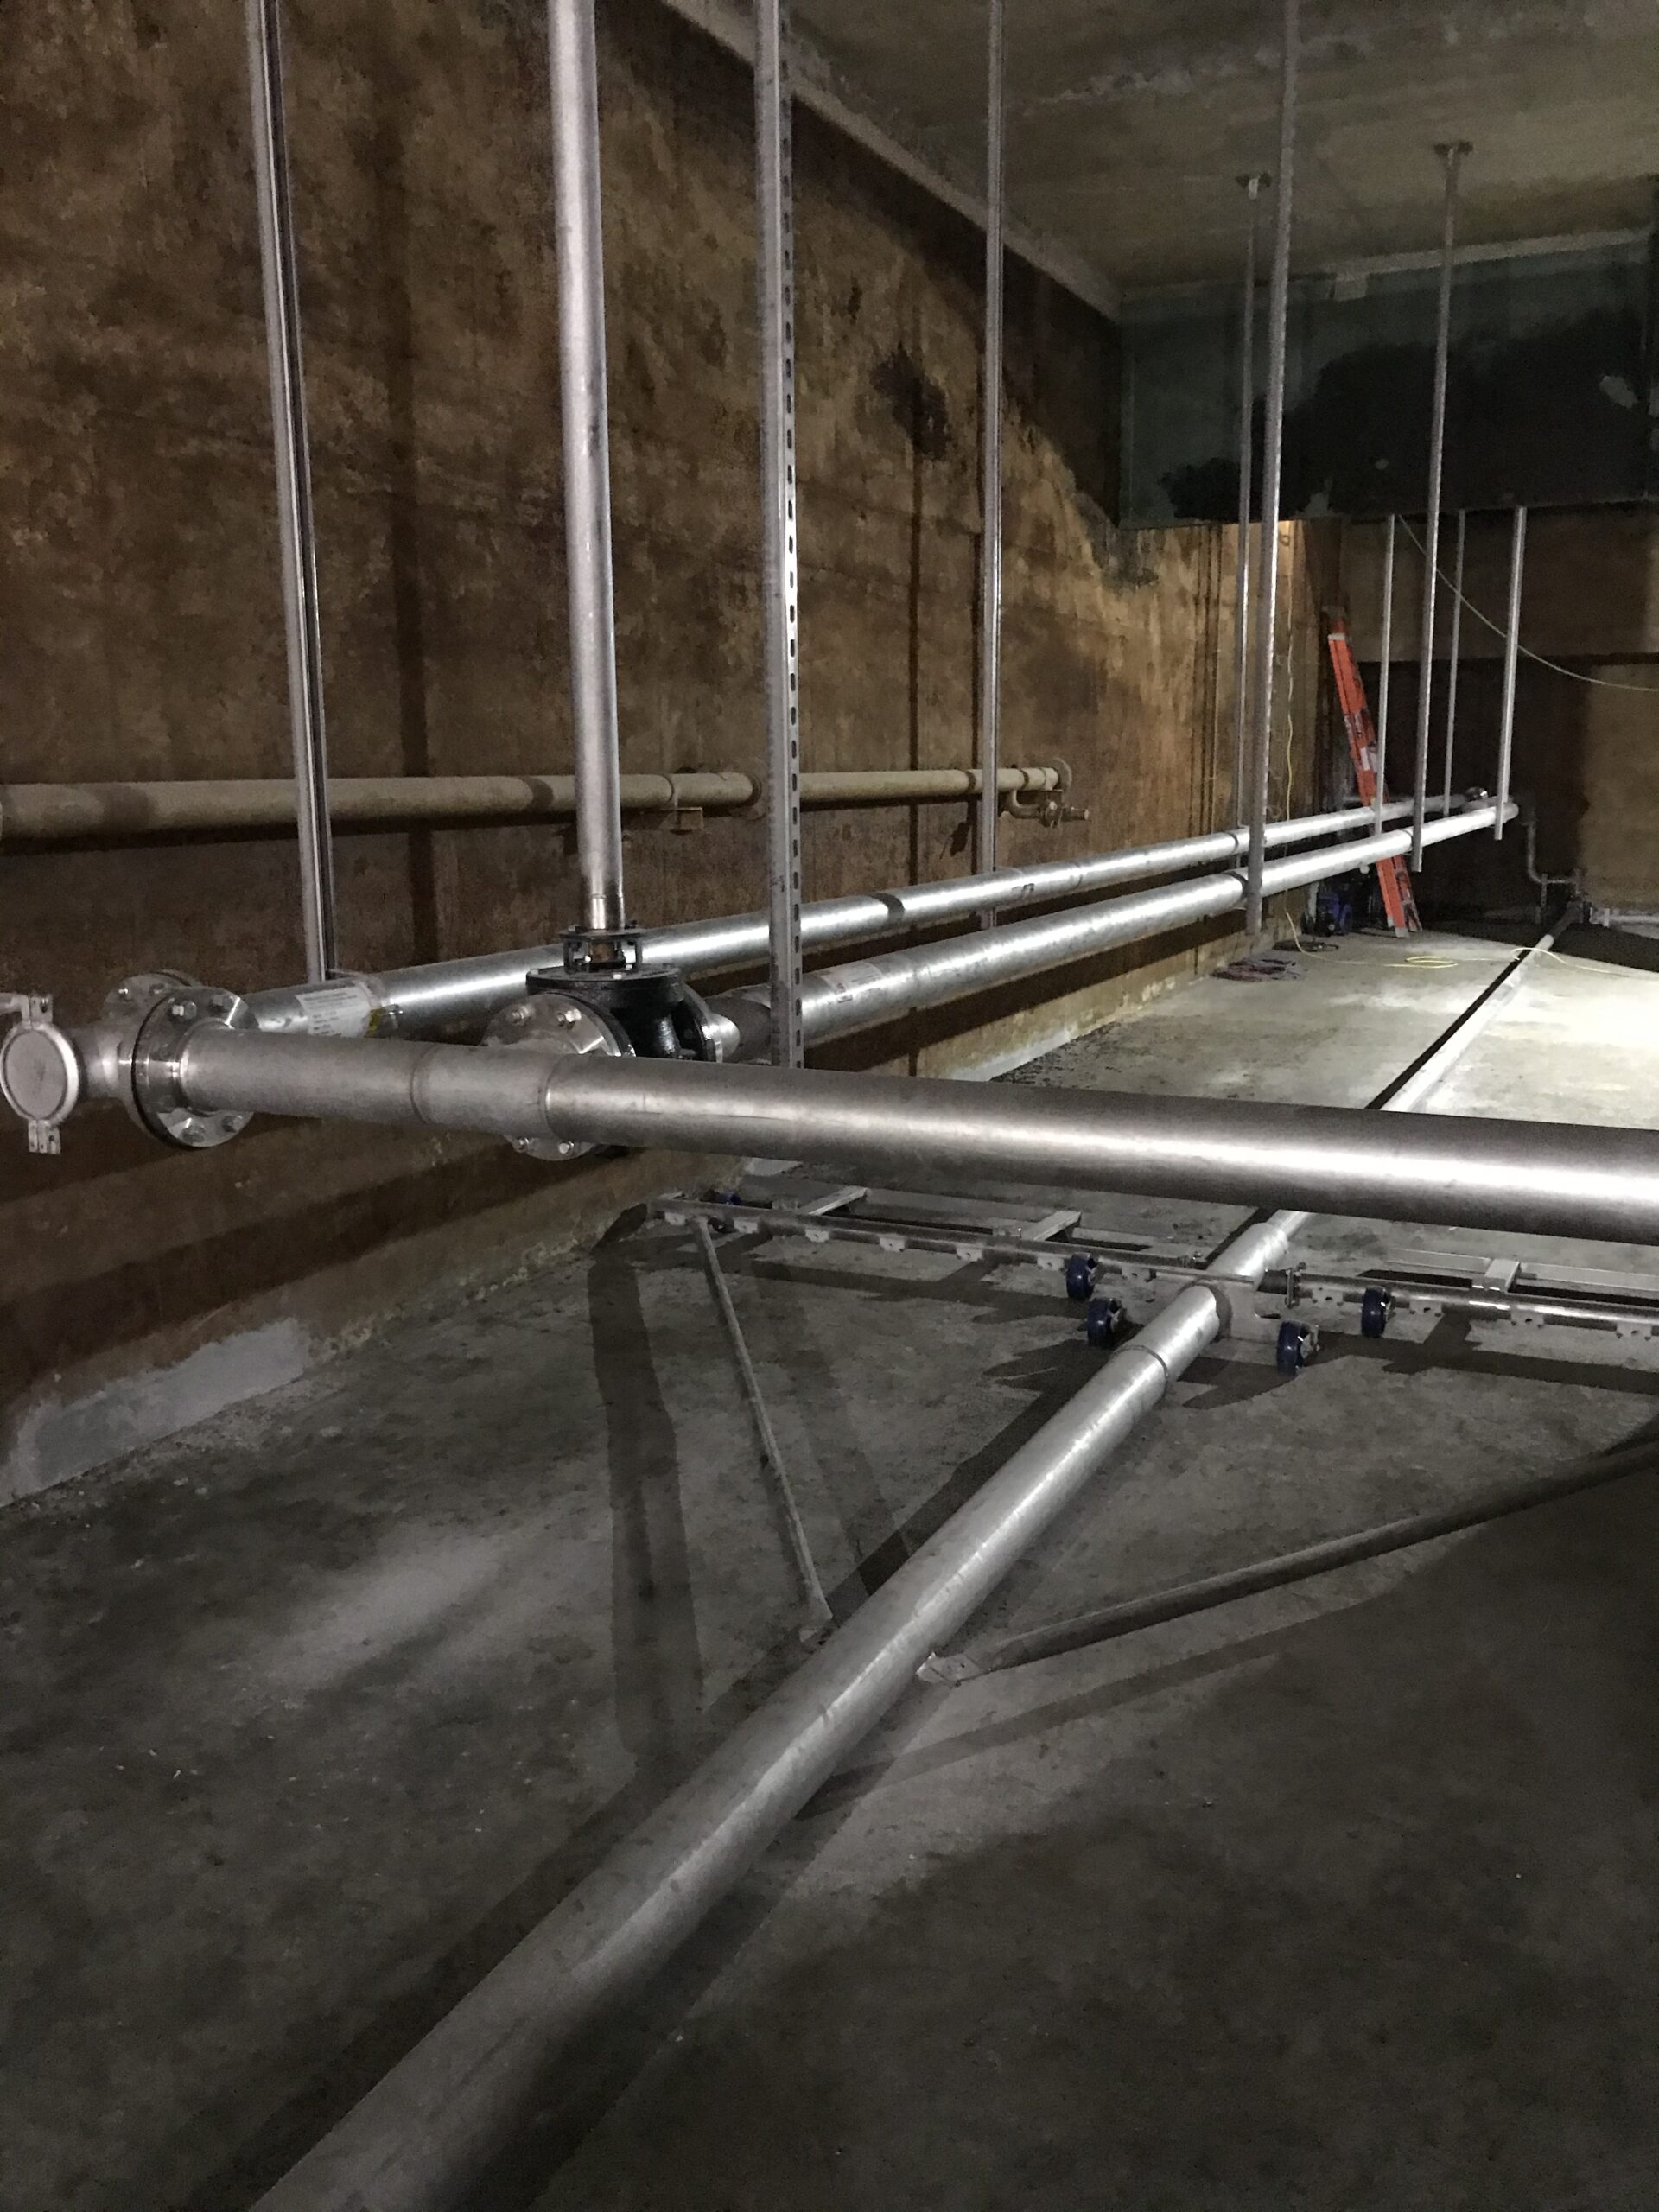 I2005 - Stainless Steel Sludge Collection Pipe & Supports